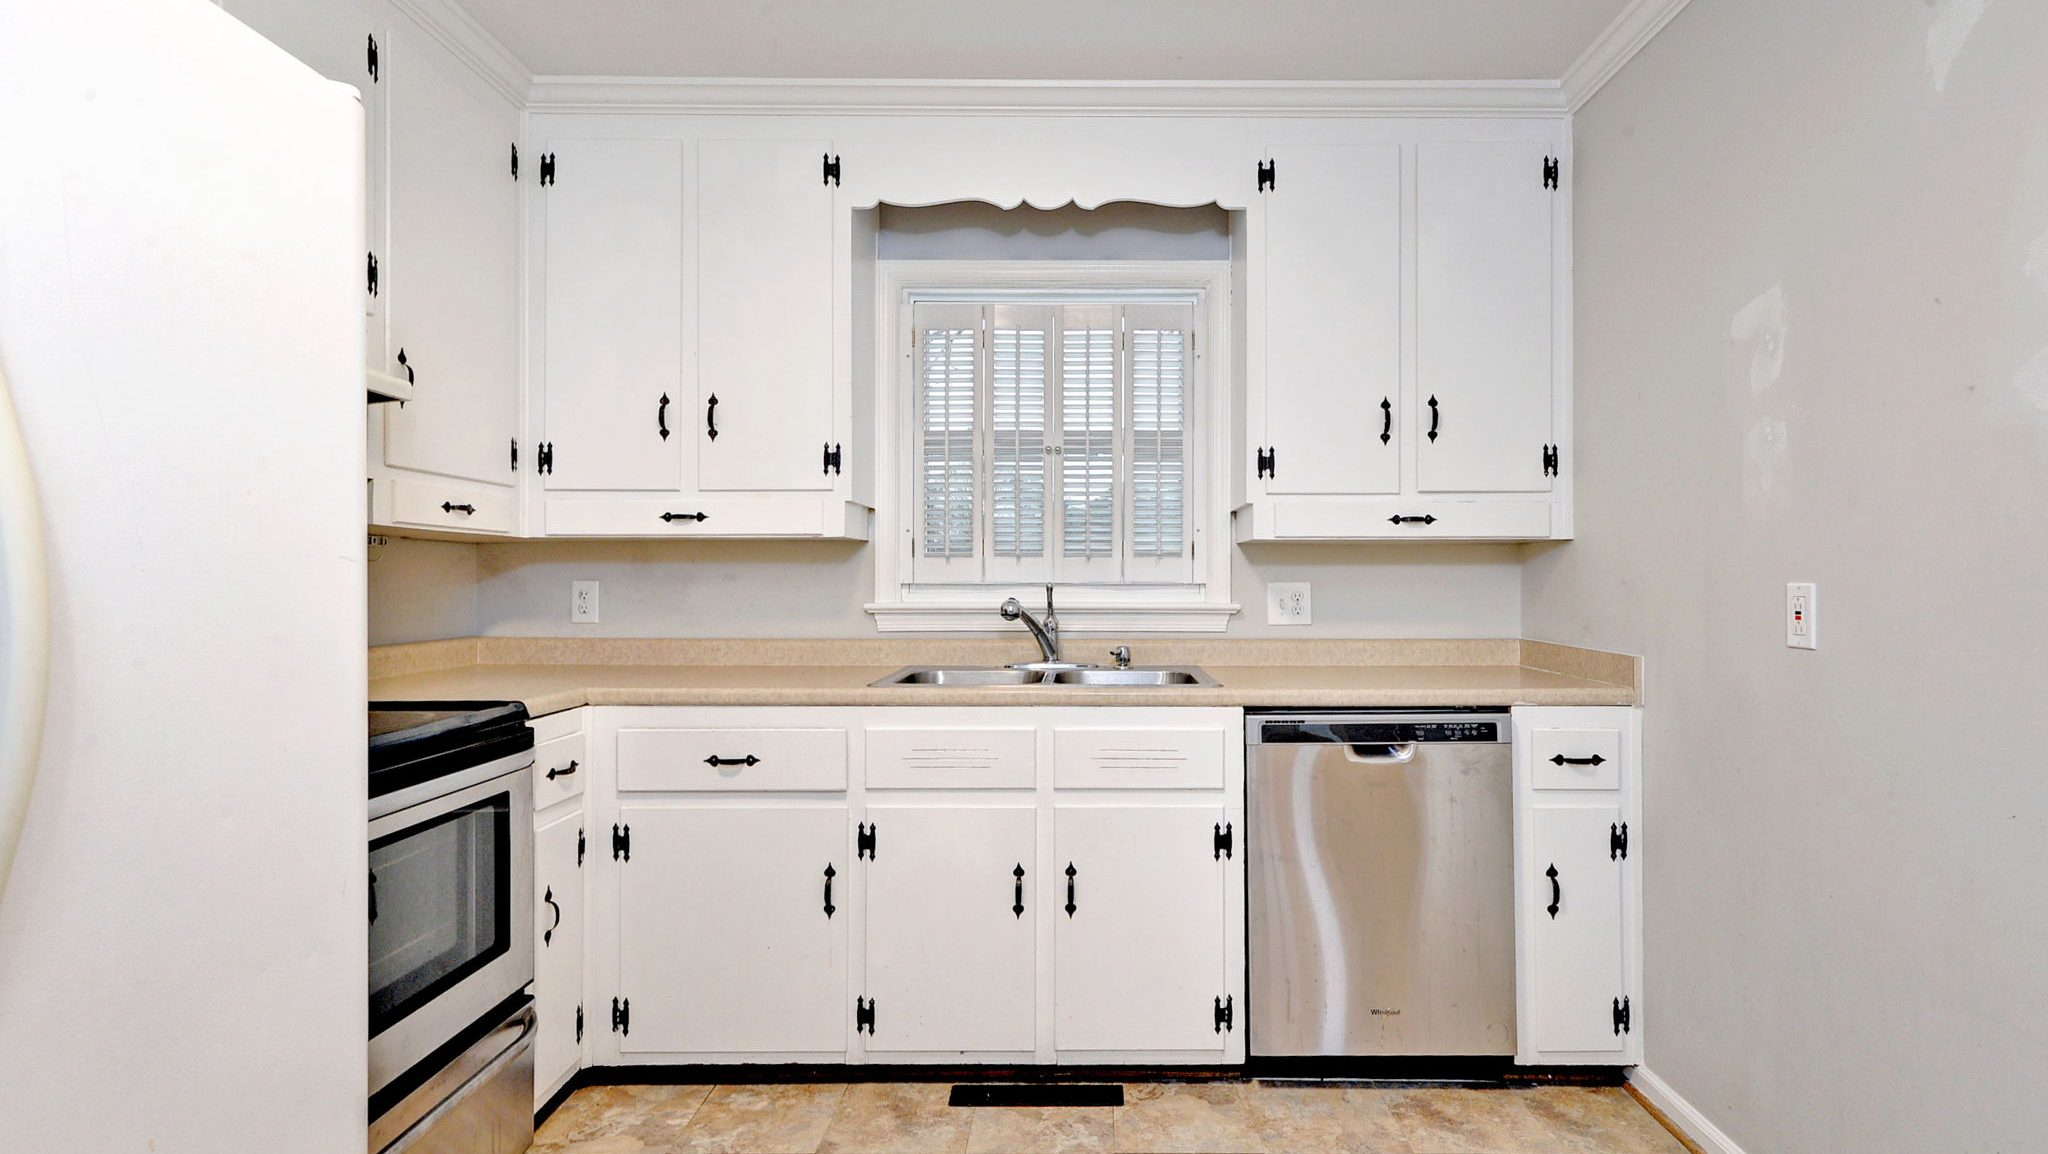 professional real estate photographer capturing white kitchen with new cabinets in new listing in newport news virginia